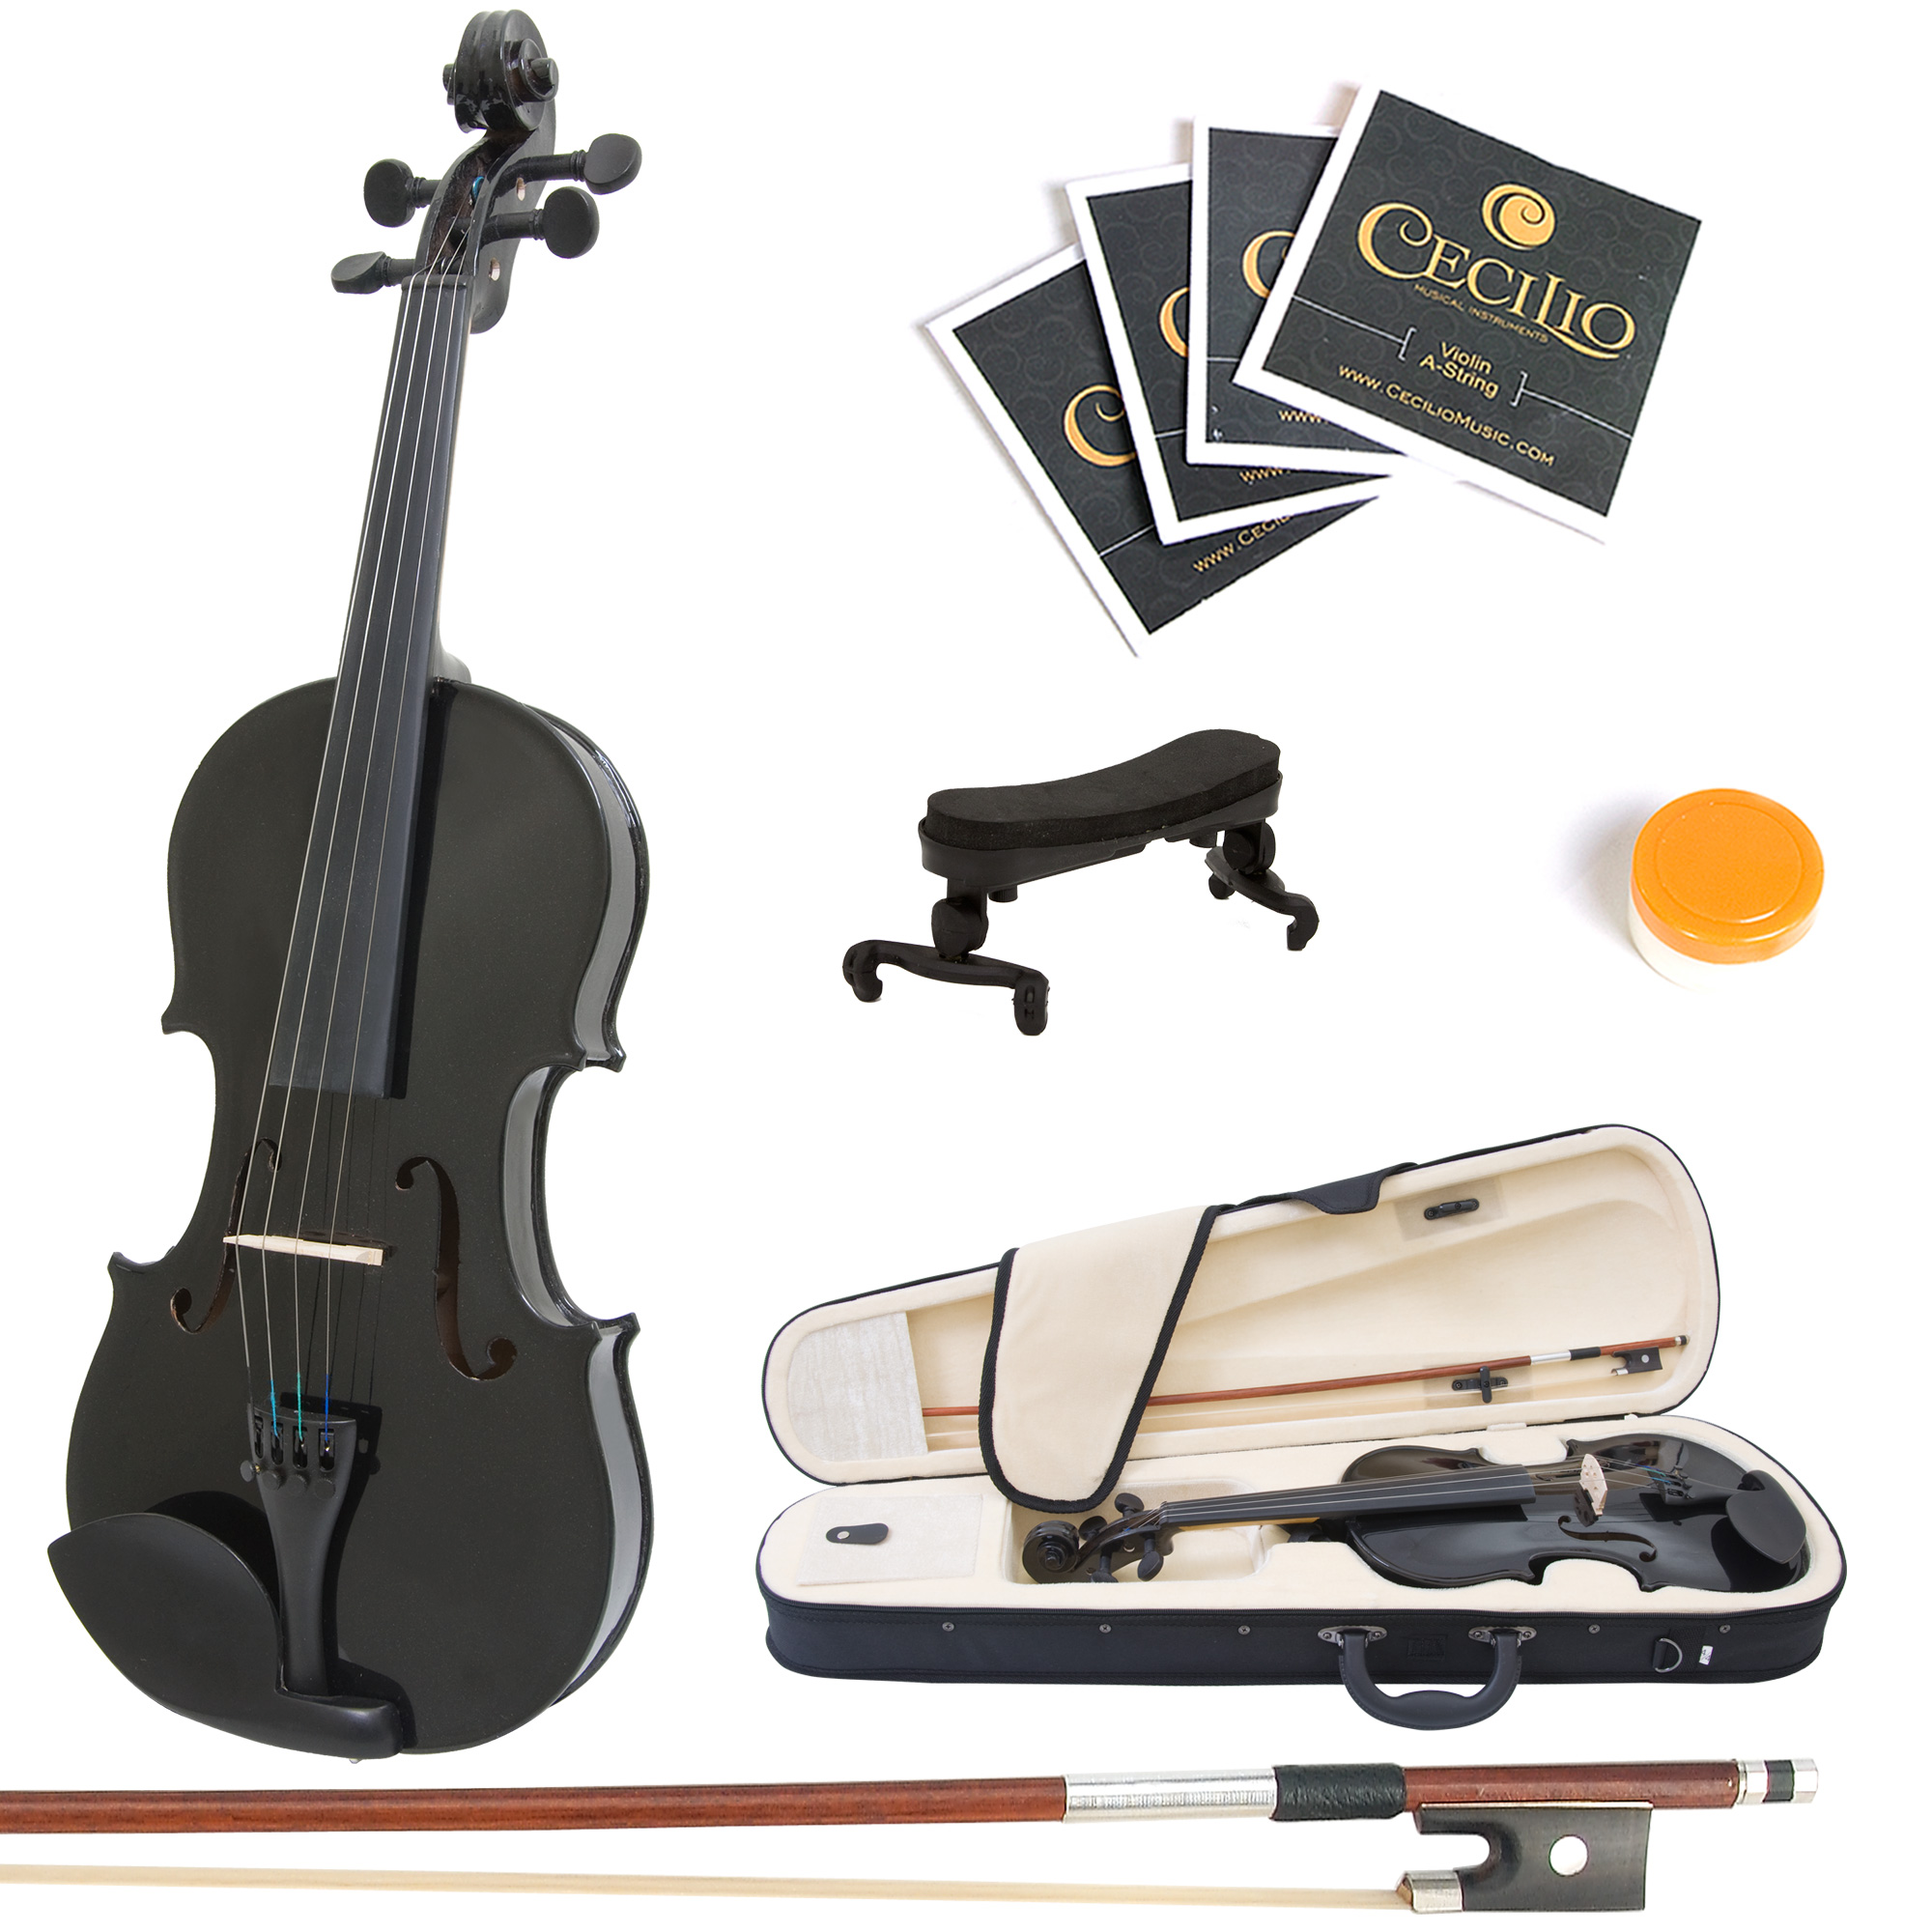 Mendini by Cecilio Full Size 4/4 MV-Black Handcrafted Solid Wood Violin Pack with 1 Year Warranty, Shoulder Rest, Bow, Rosin, Extra Set Strings, 2 Bridges & Case, Metallic Black